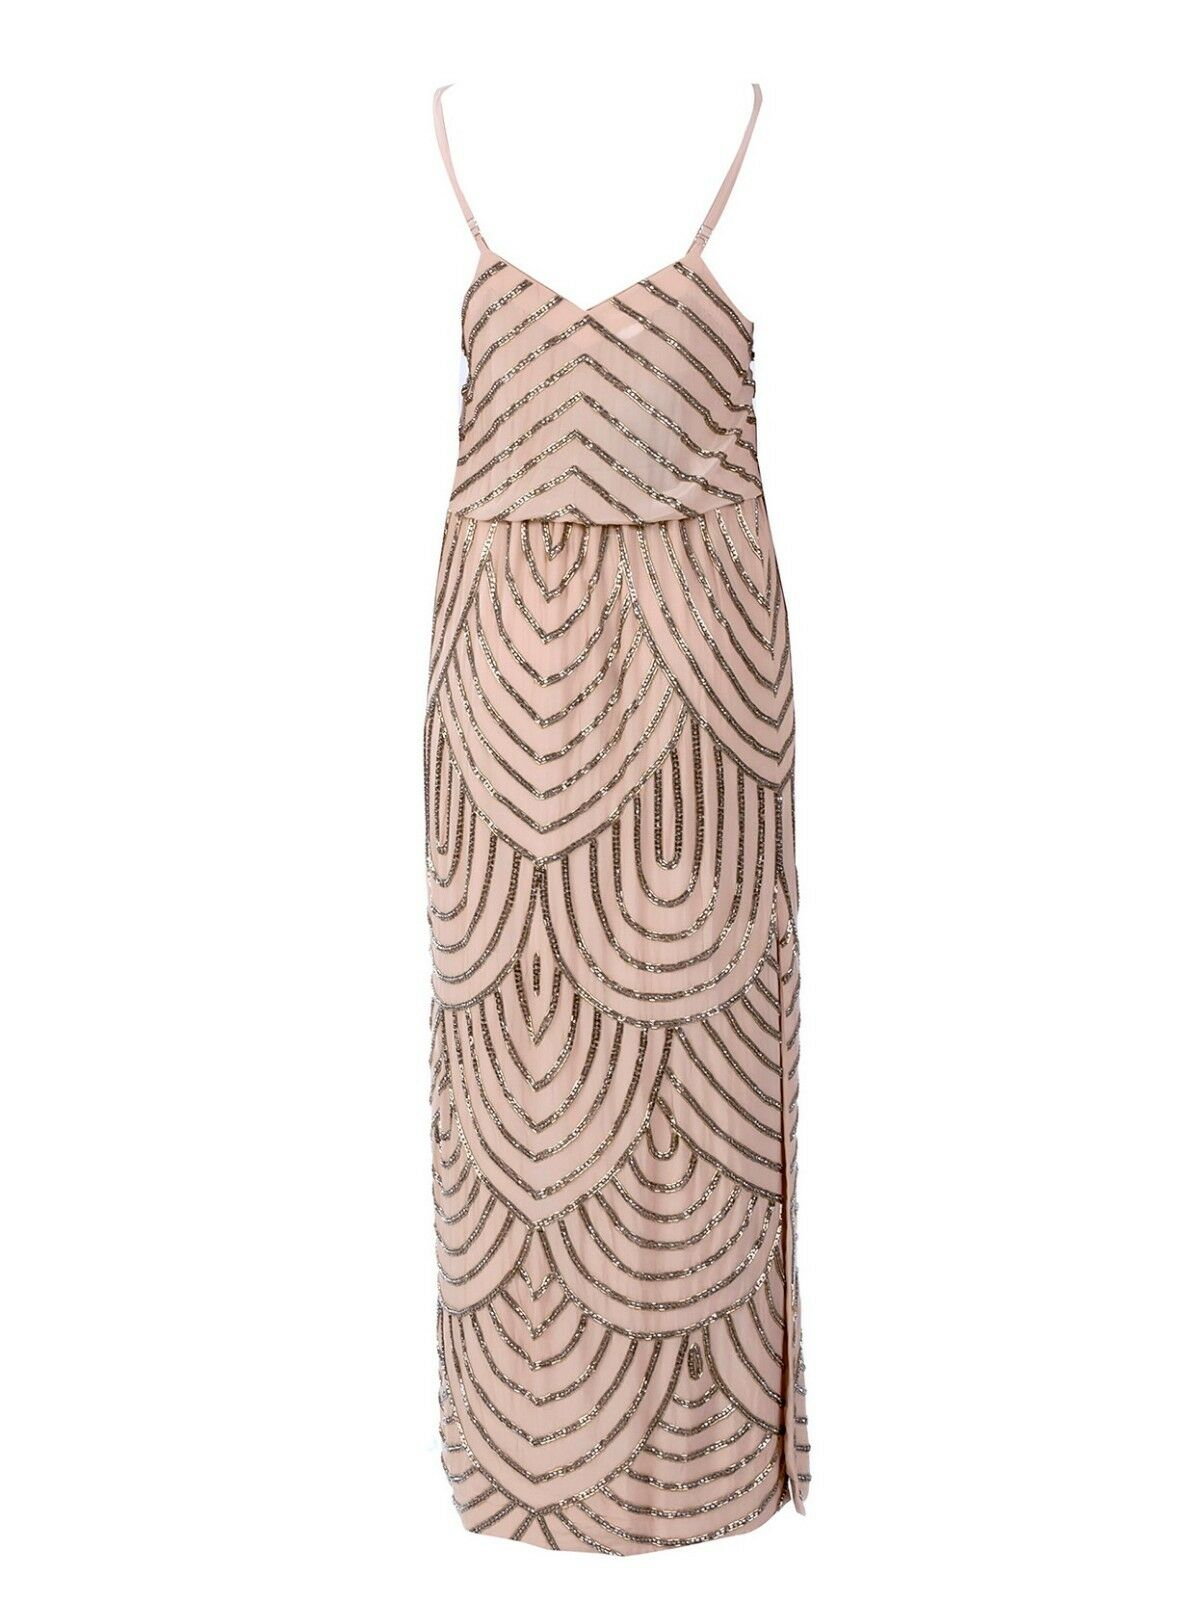 Karina Grimaldi Deco Beaded Maxi Dress in Nude Nude Nude Size M 6ad50f